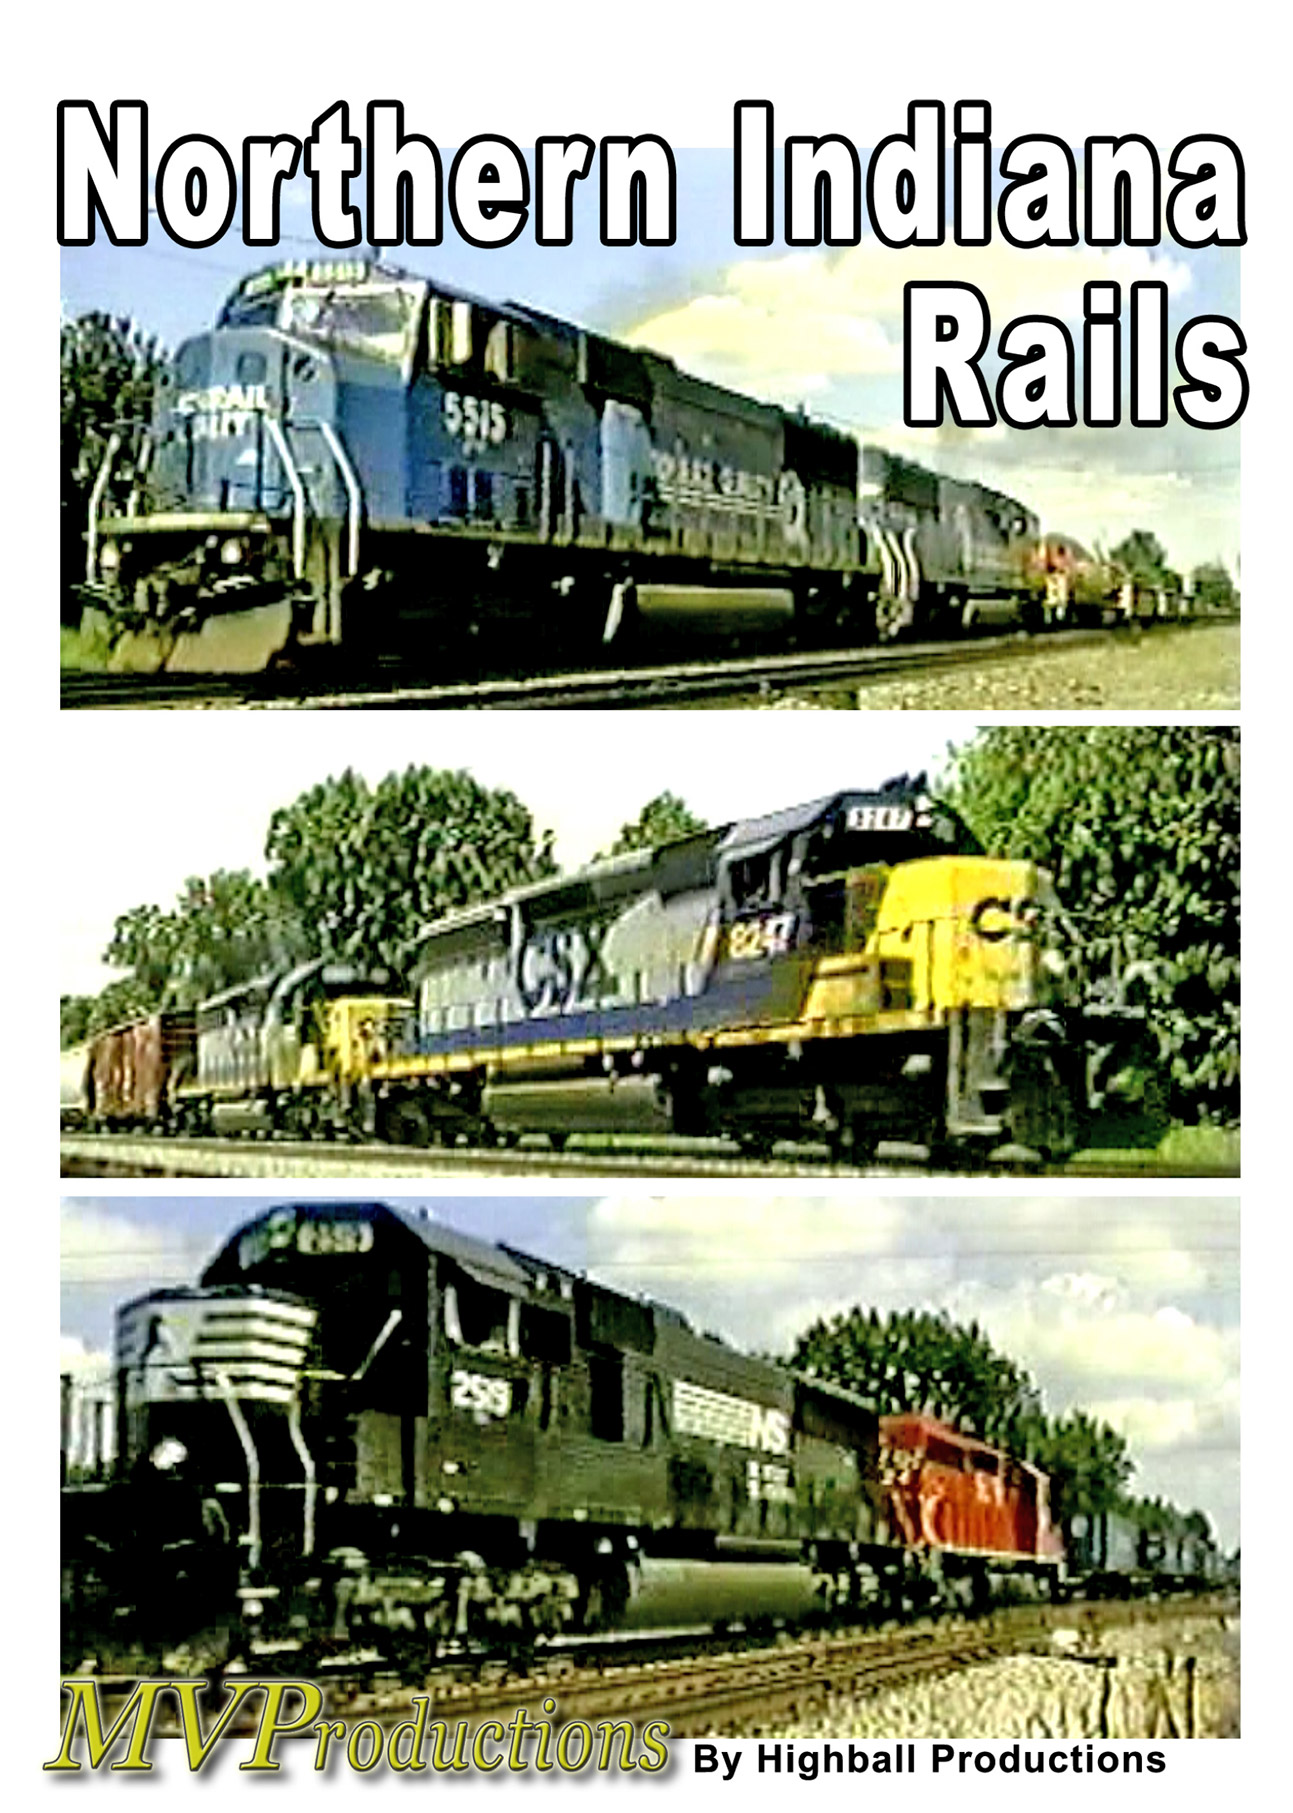 Northern Indiana Rails Train Video Midwest Video Productions MVNIR 601577880264